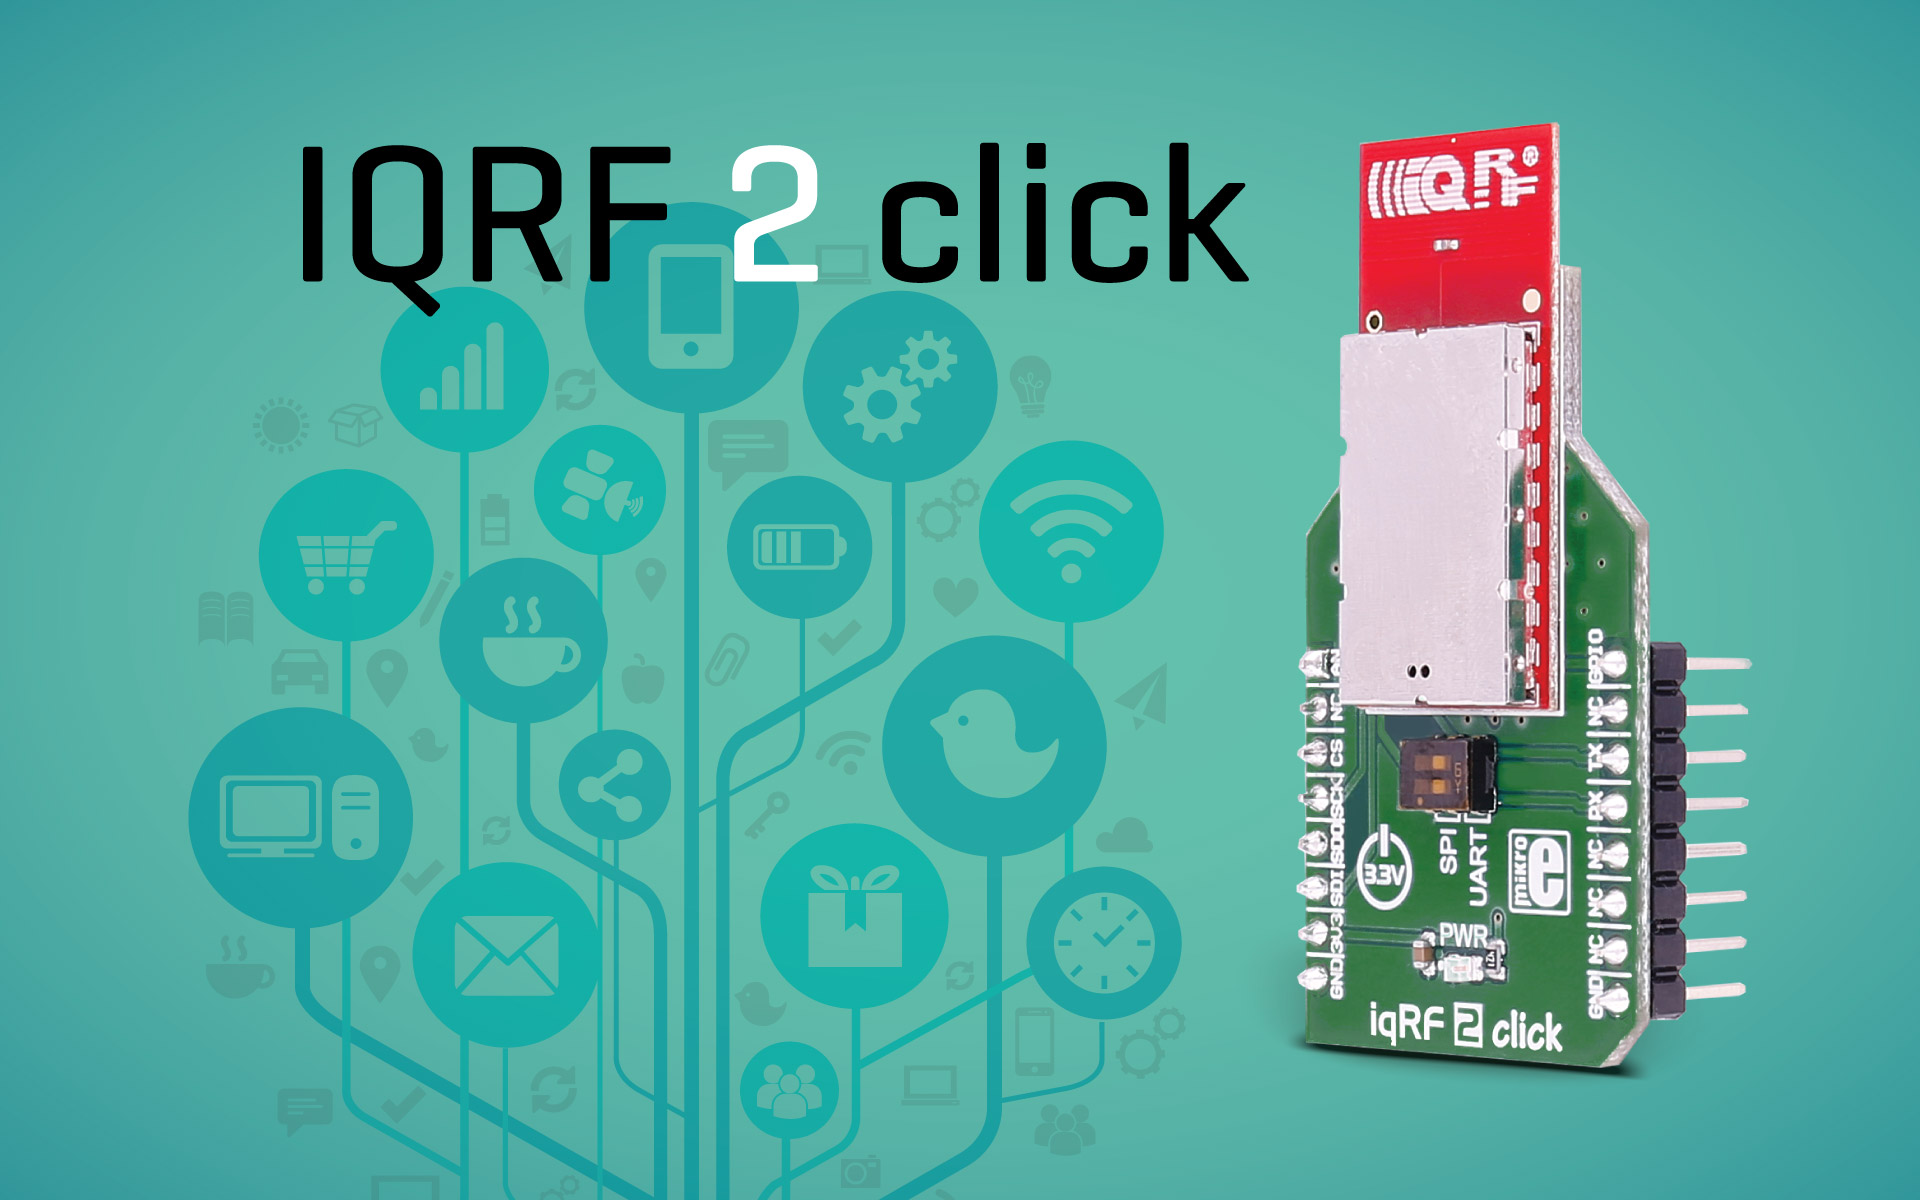 IQRF 2 click - IQRF technology transceiver